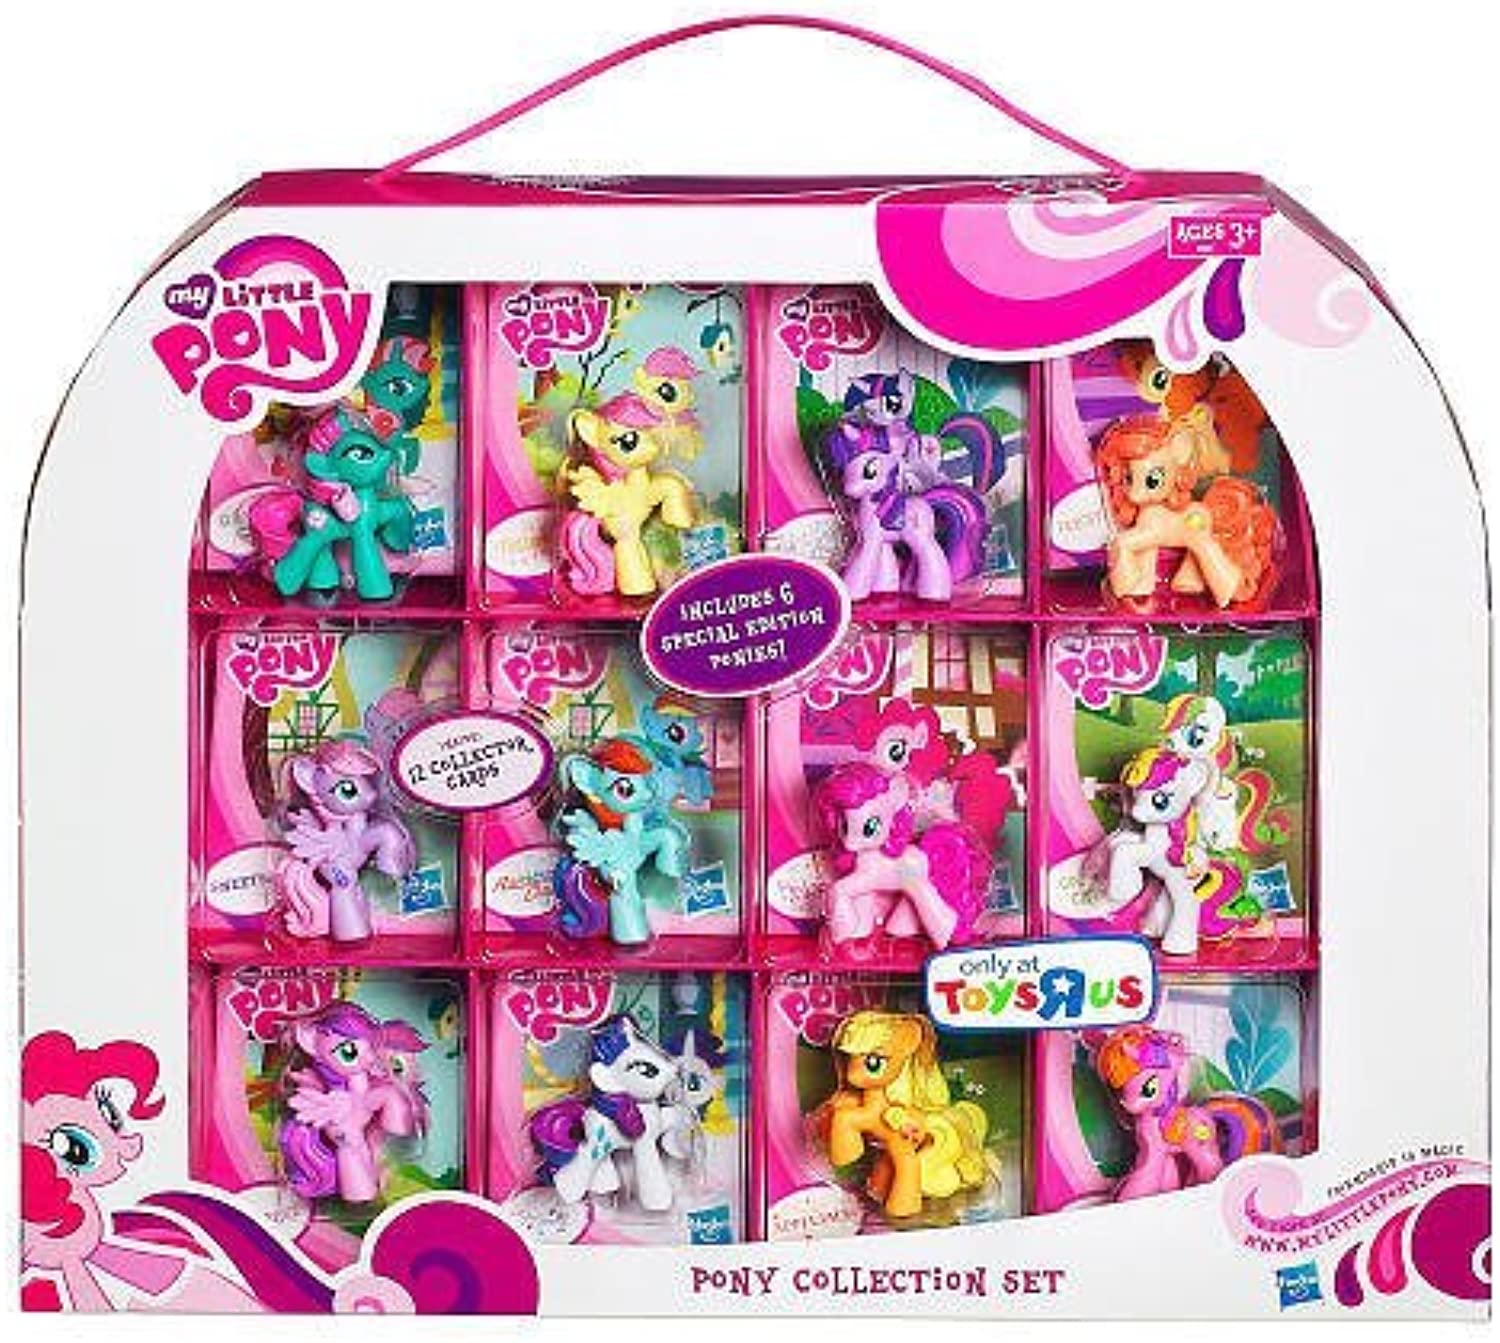 My Little Pony Exclusive 12Pack Pony Collection Set Includes 6 Special Edition Ponies